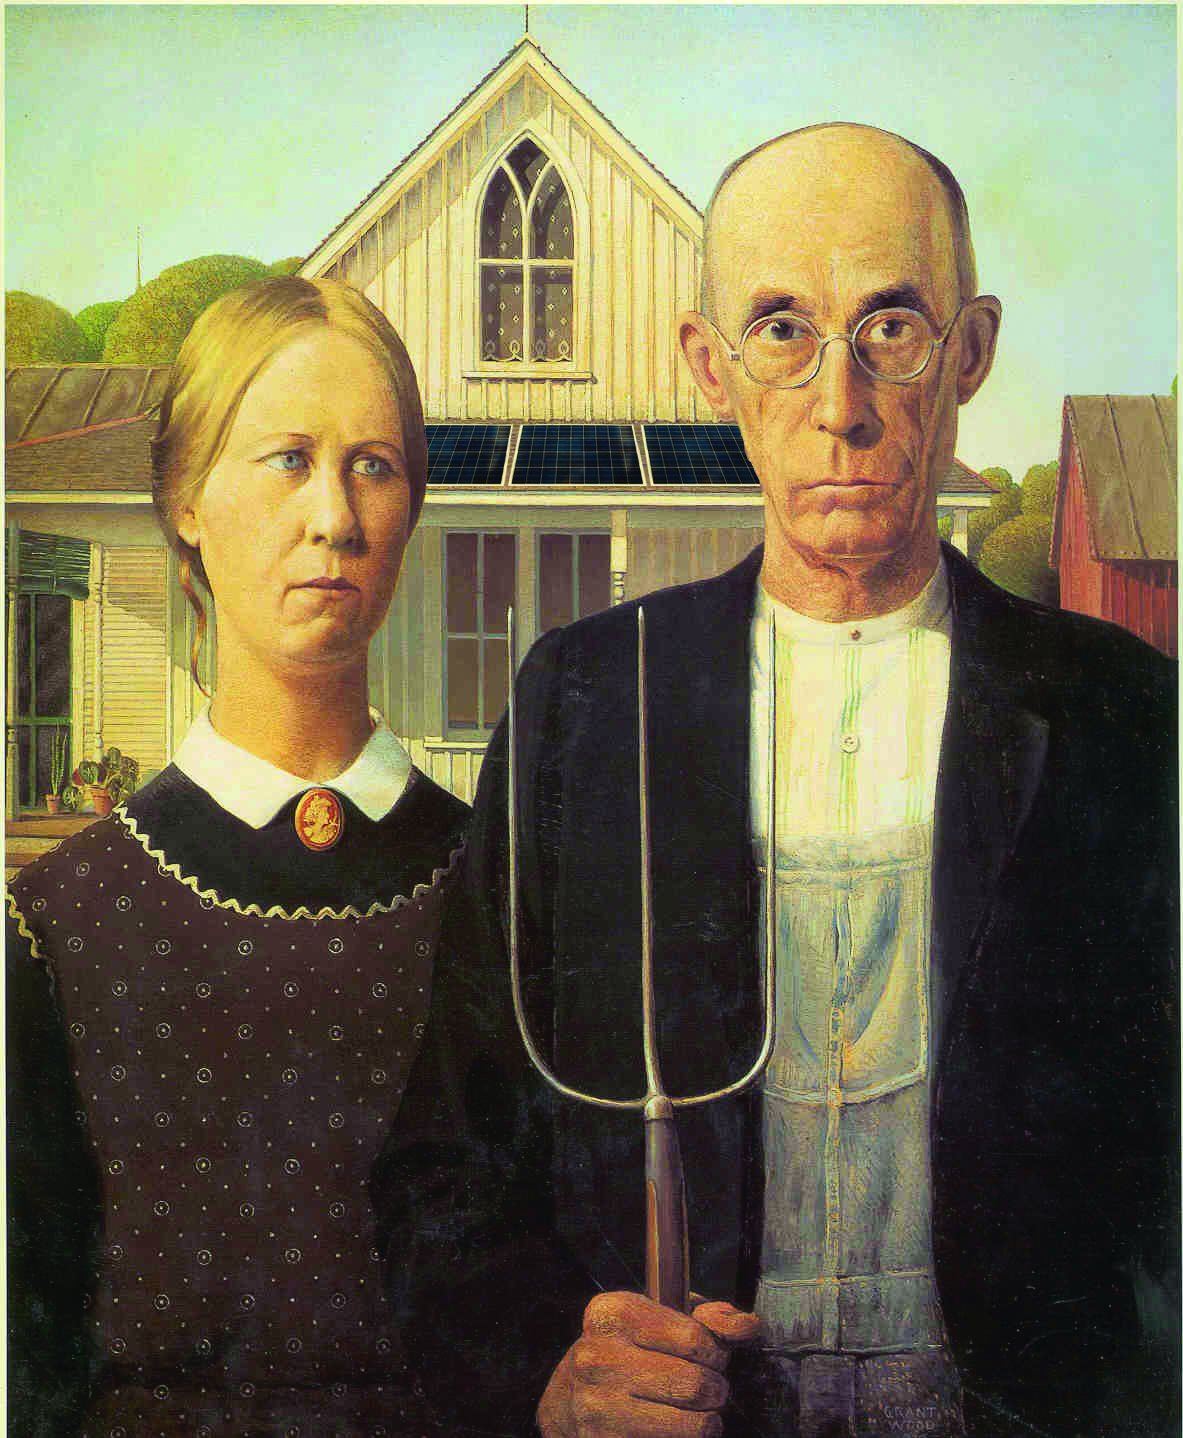 American Gothic with a twist. #solarpv #americangothic #absolute